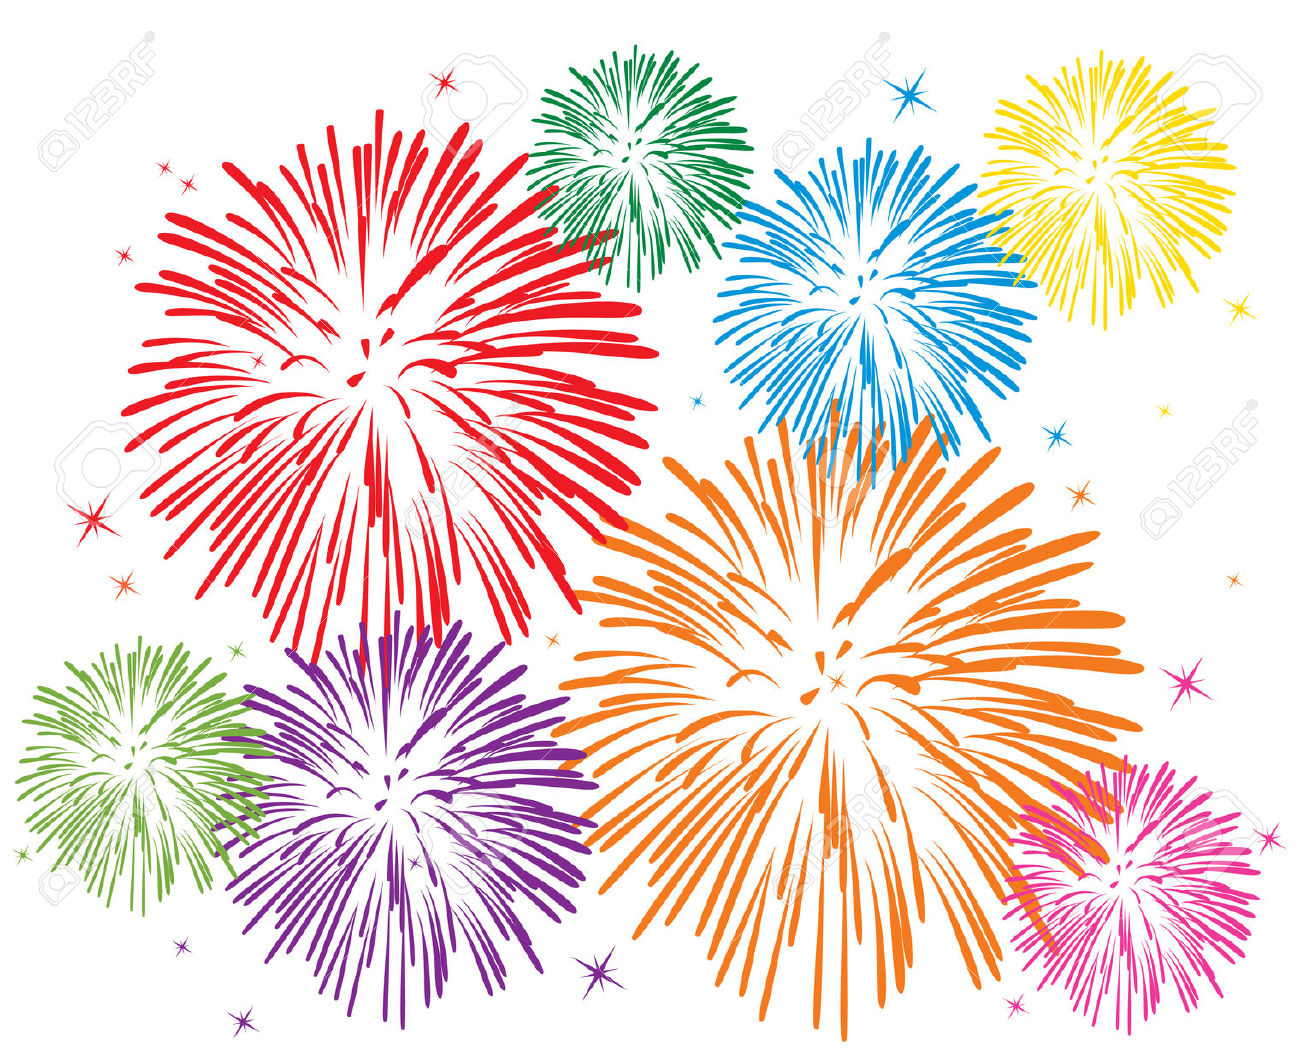 Fireworks clipart page 1